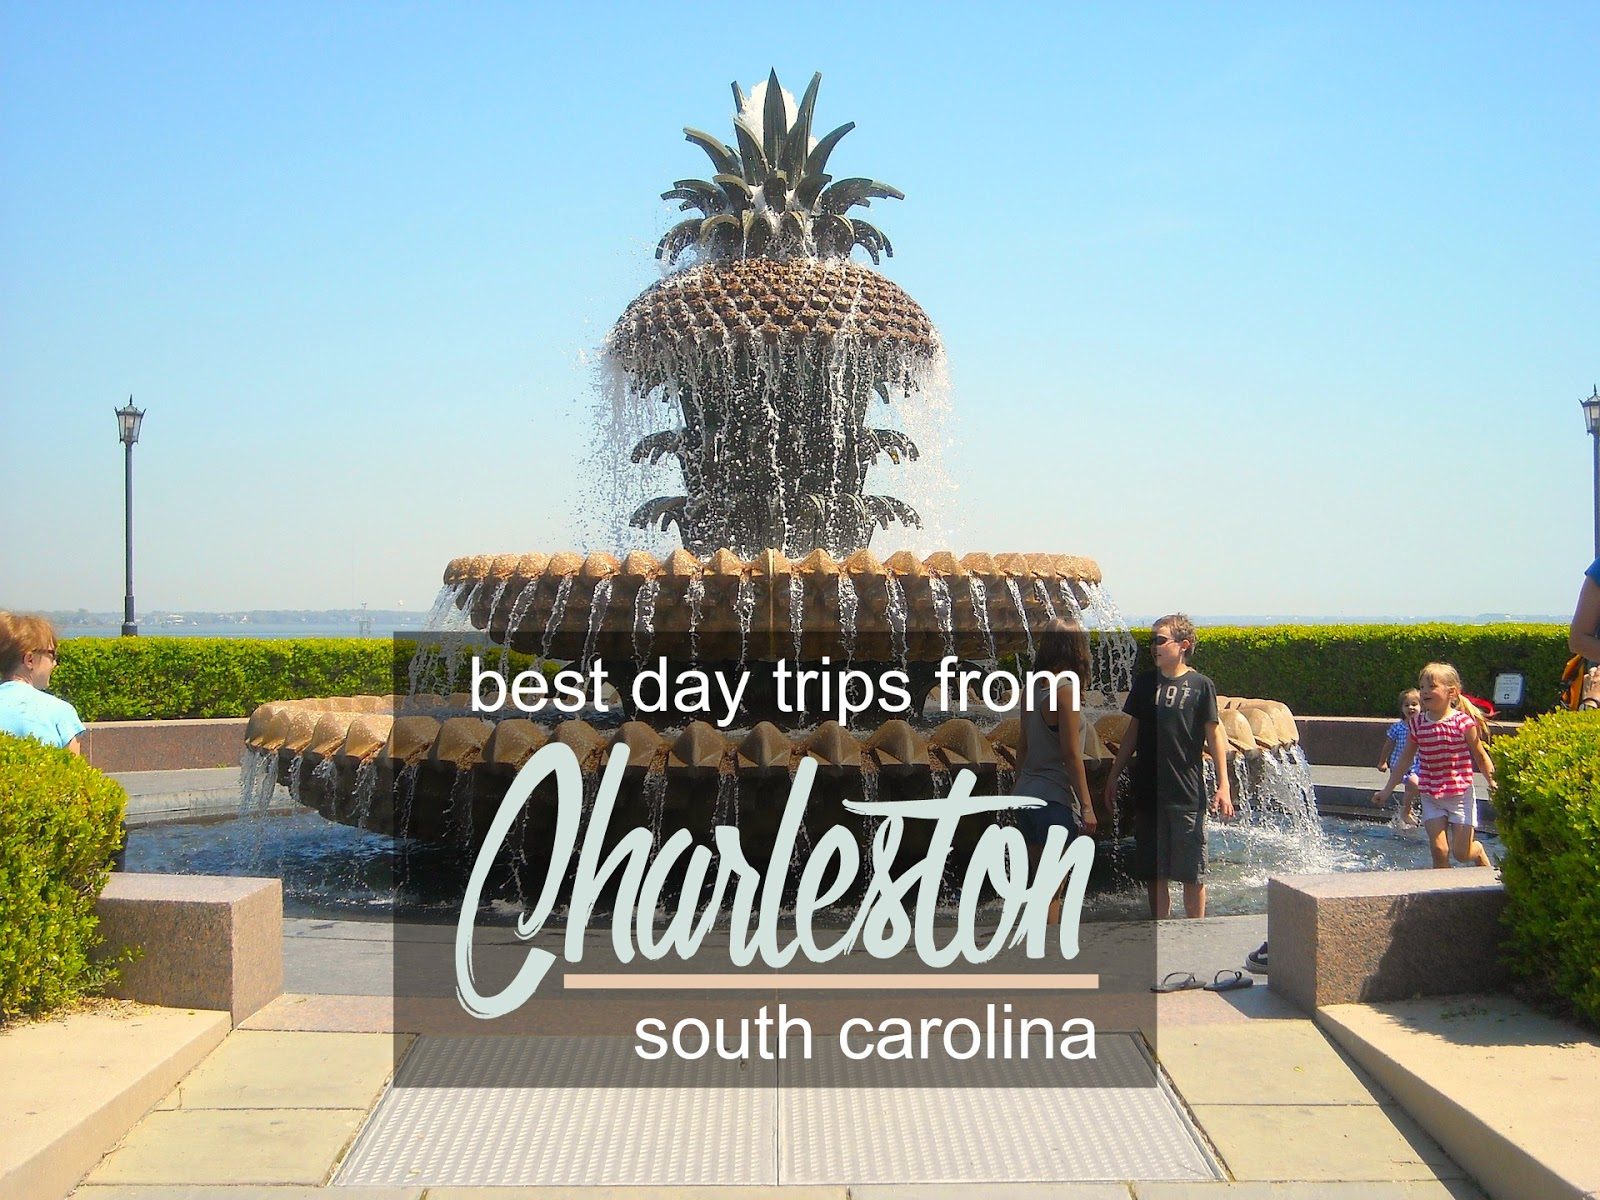 Best day trips from charleston south carolina cosmos for Where to go in charleston sc